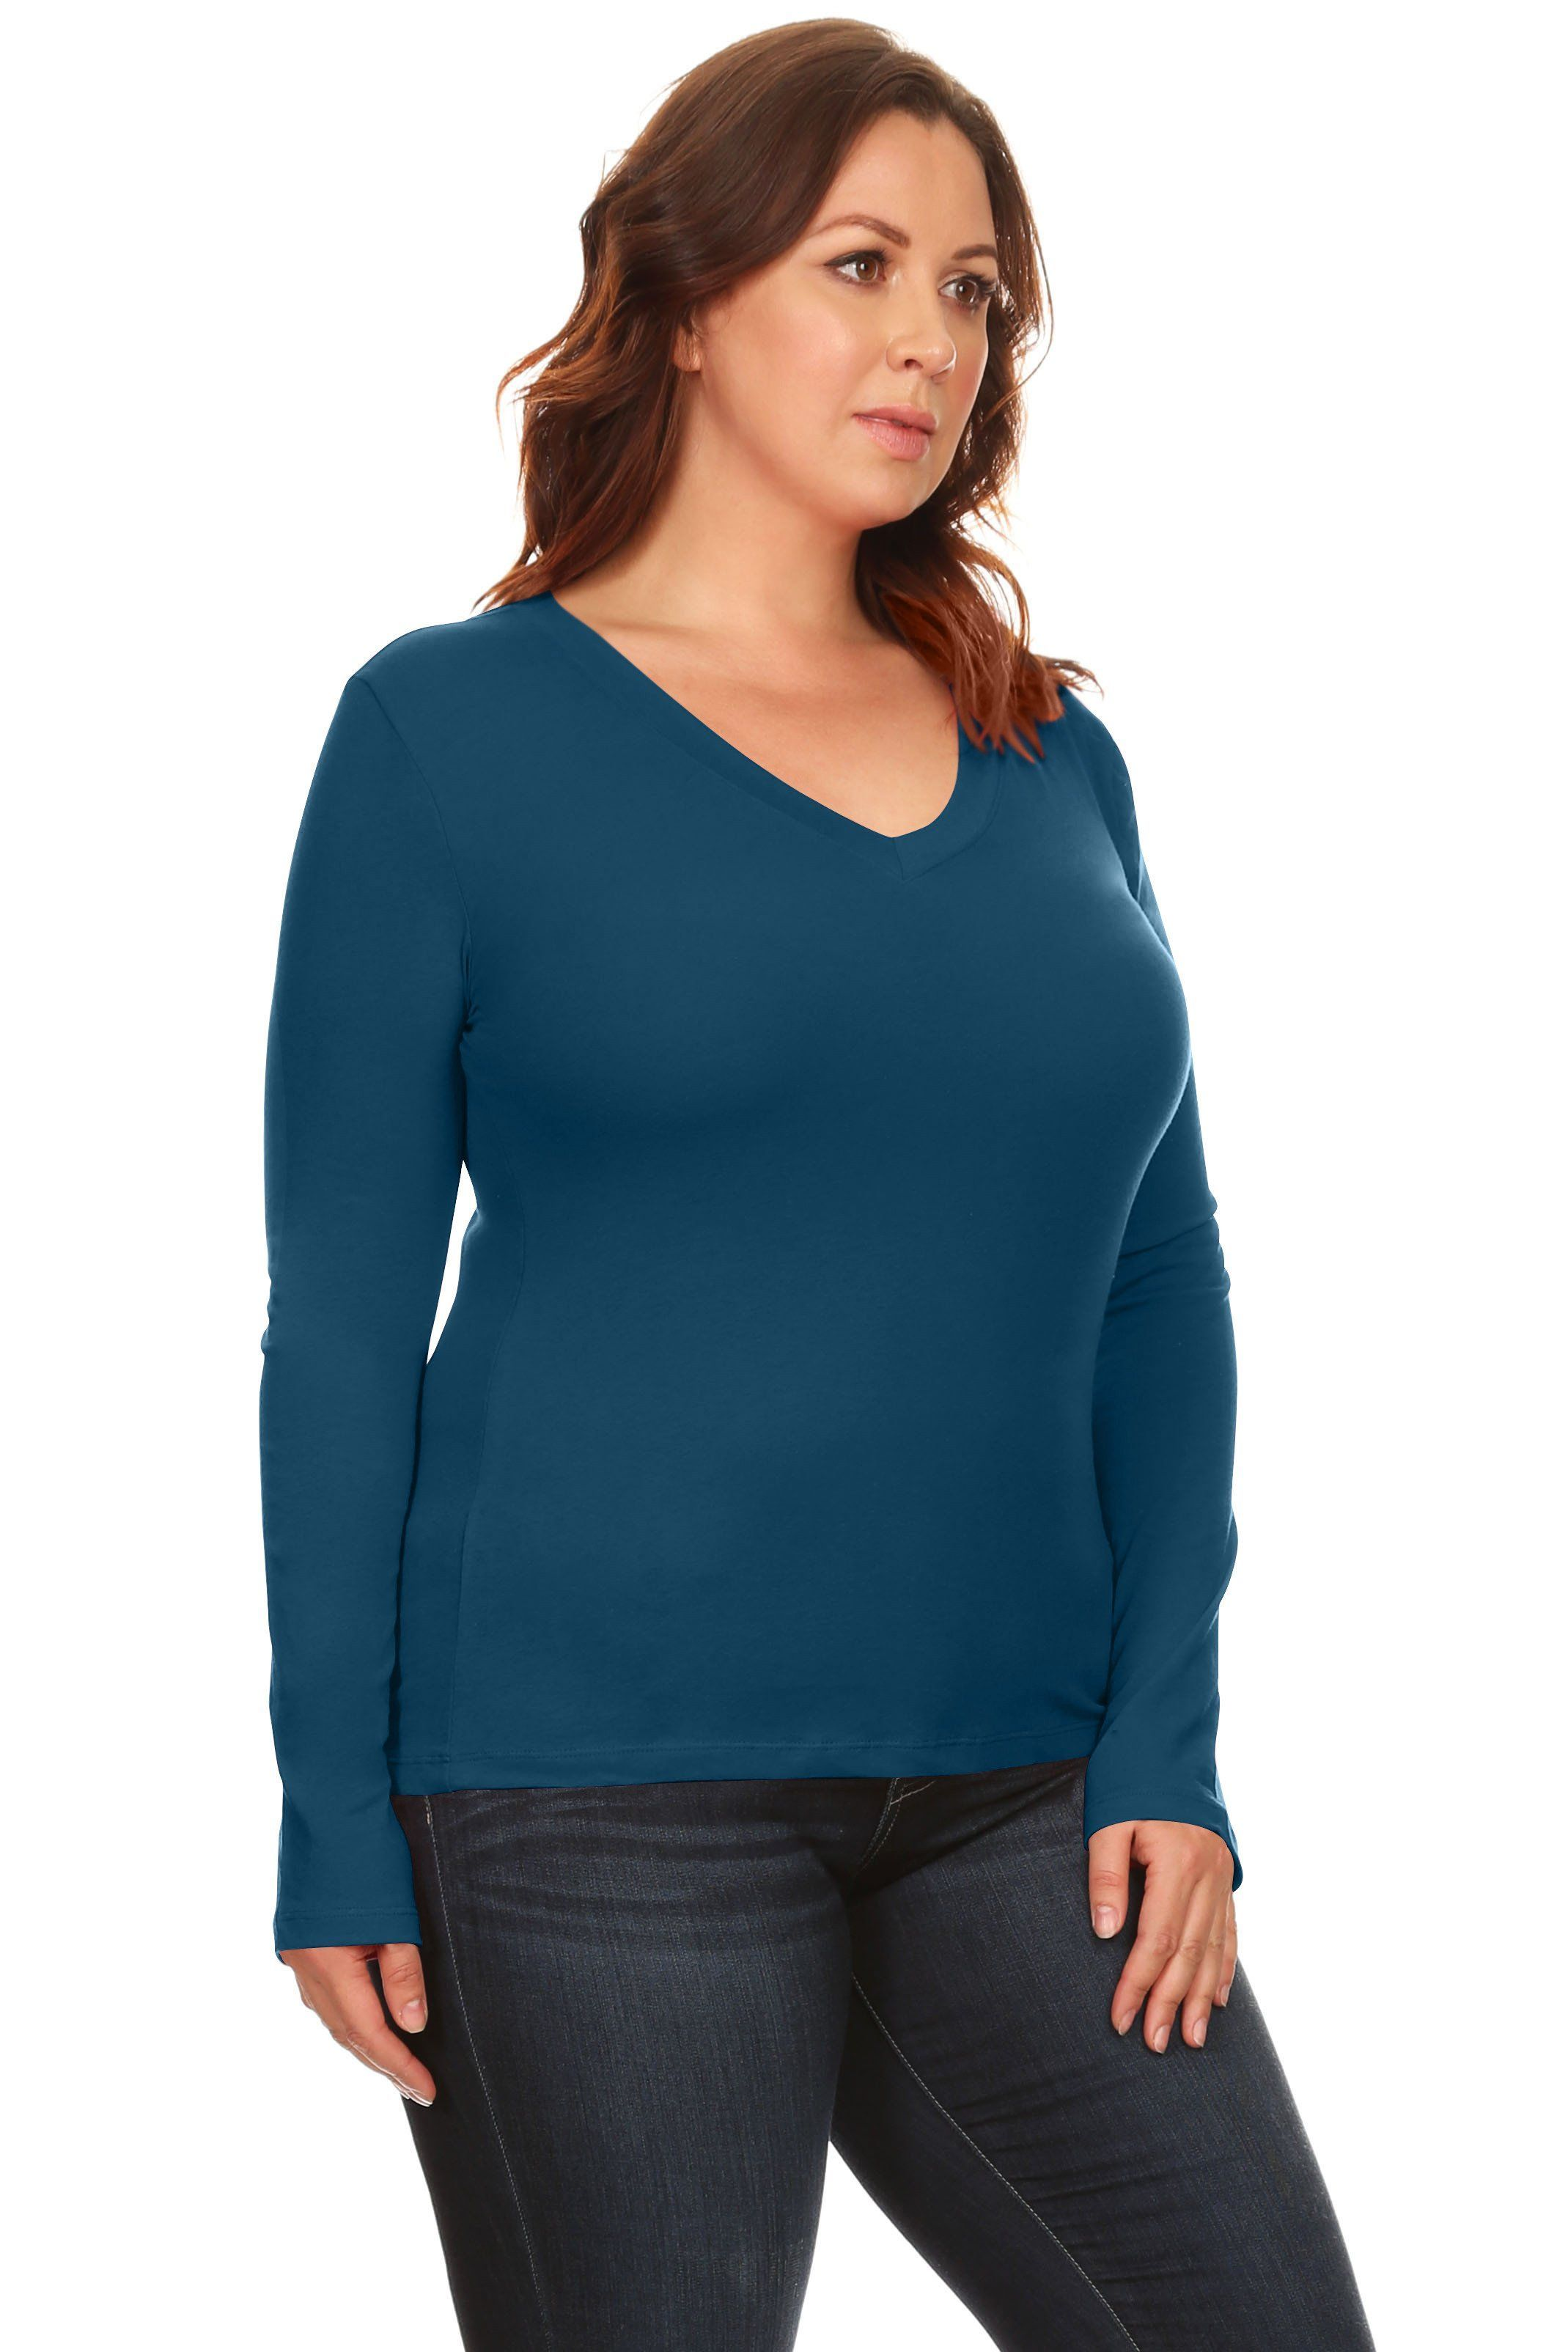 2a0518b30c5  11.99 Simlu Plus Size Sweater Long Sleeve Pullover V Neck T Shirt for Women